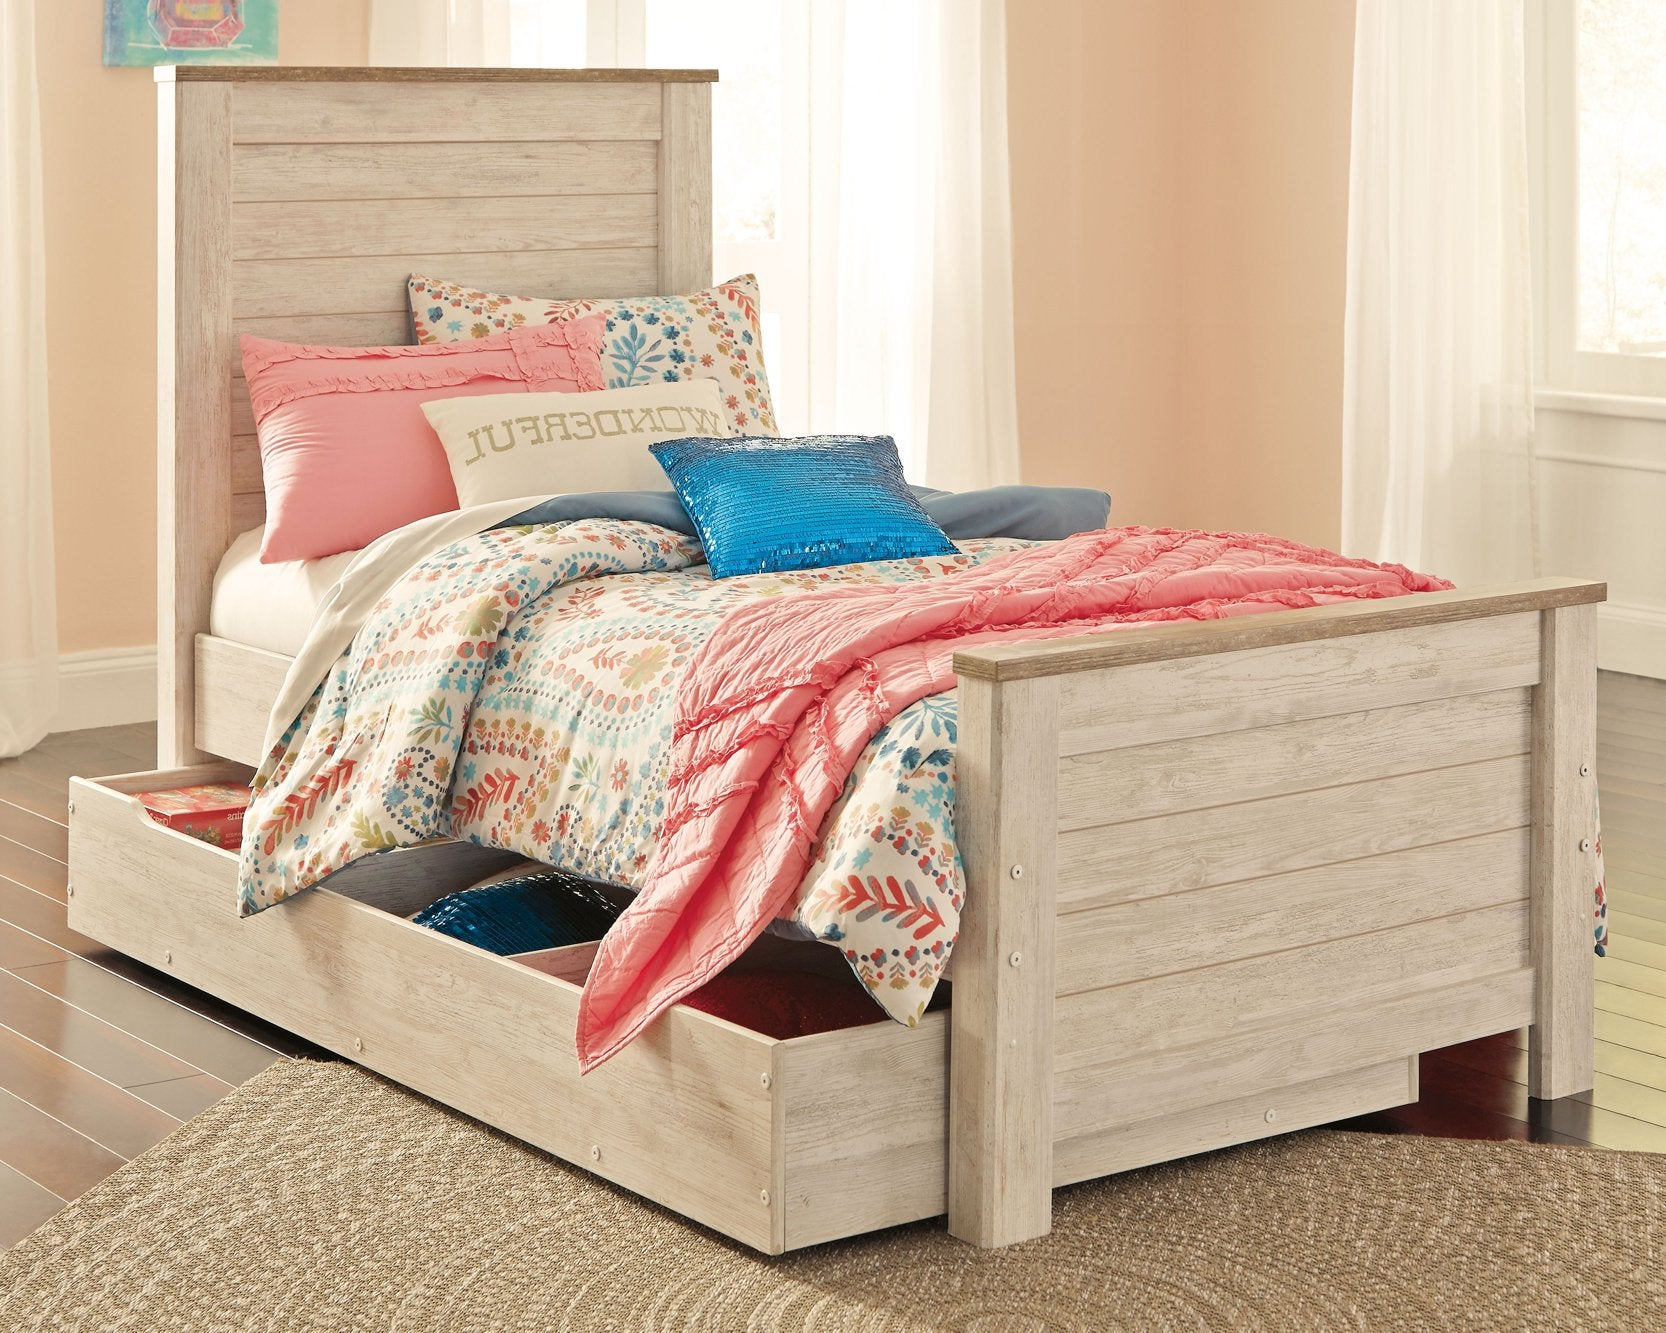 Willowton Signature Design by Ashley Bed with Storagfe Drawer image